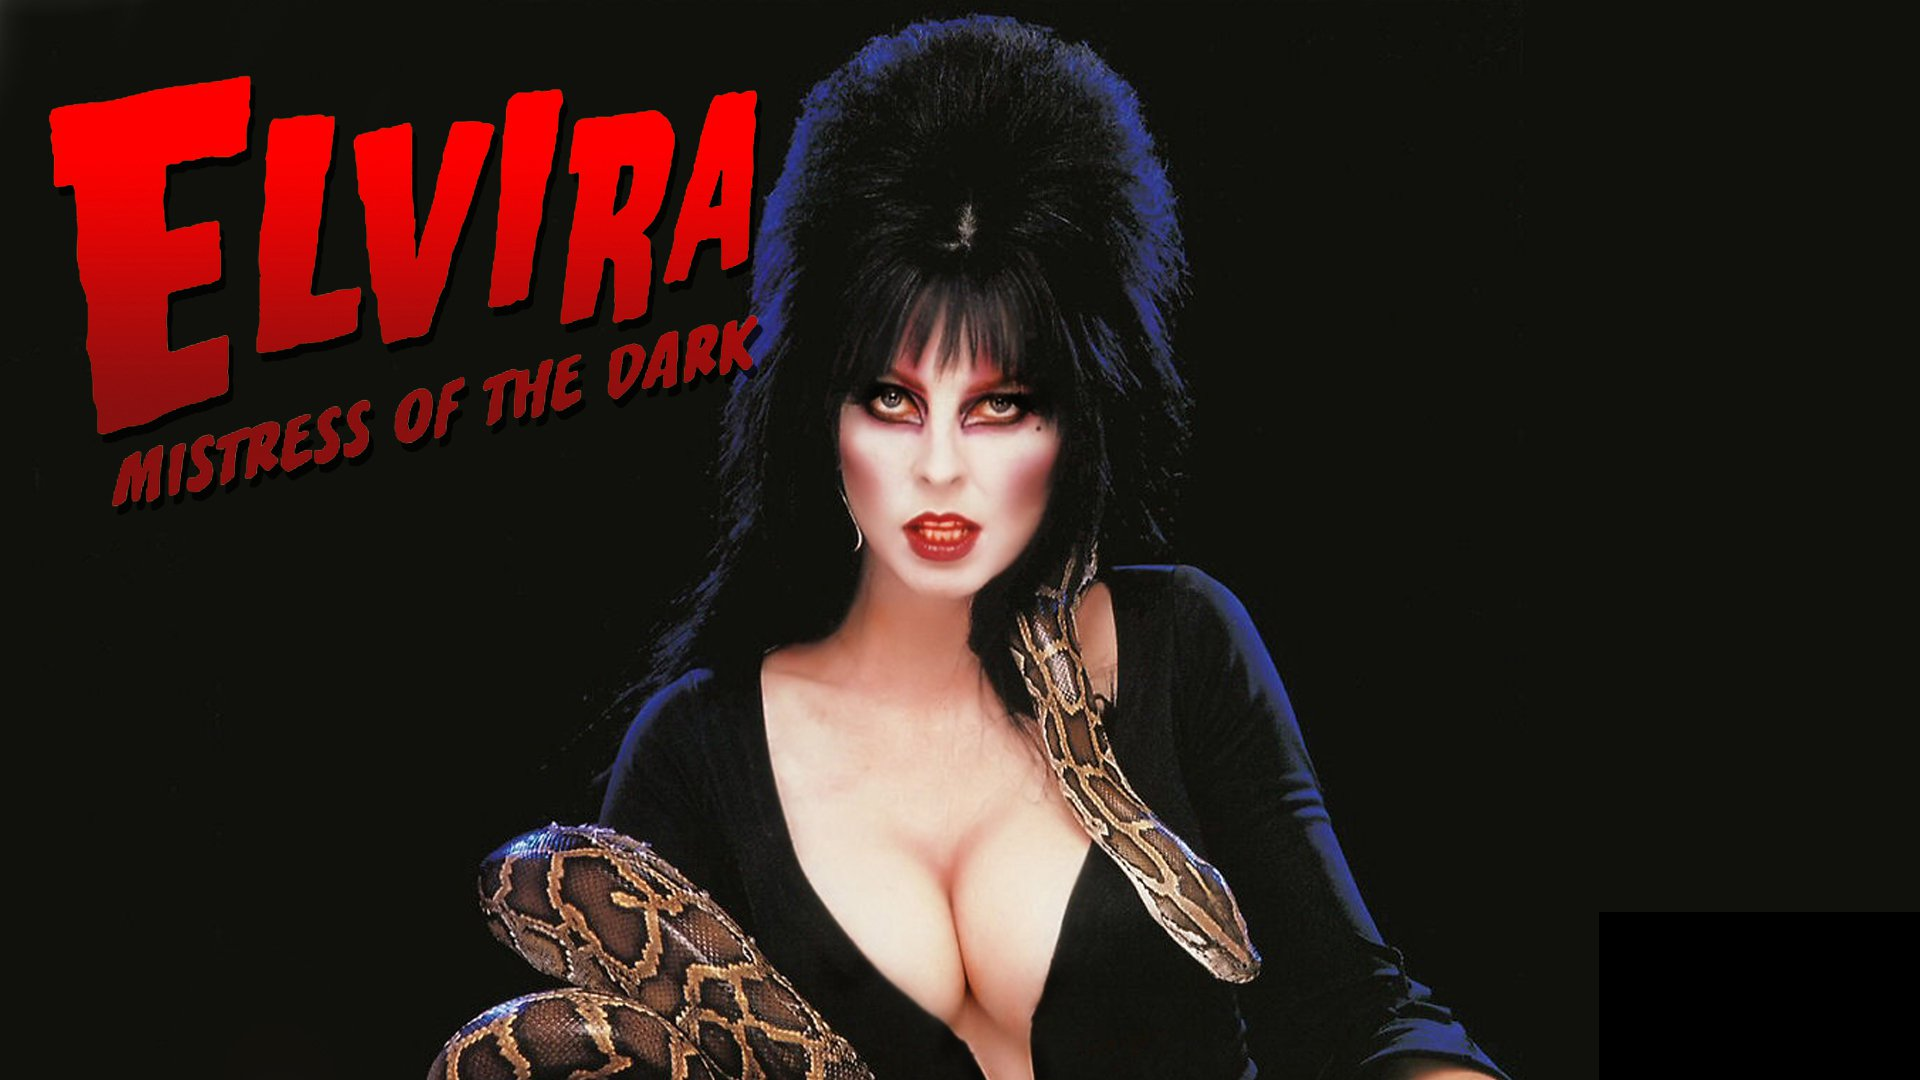 Lists the movie Elvira Mistress of the Dark belongs to 1920x1080